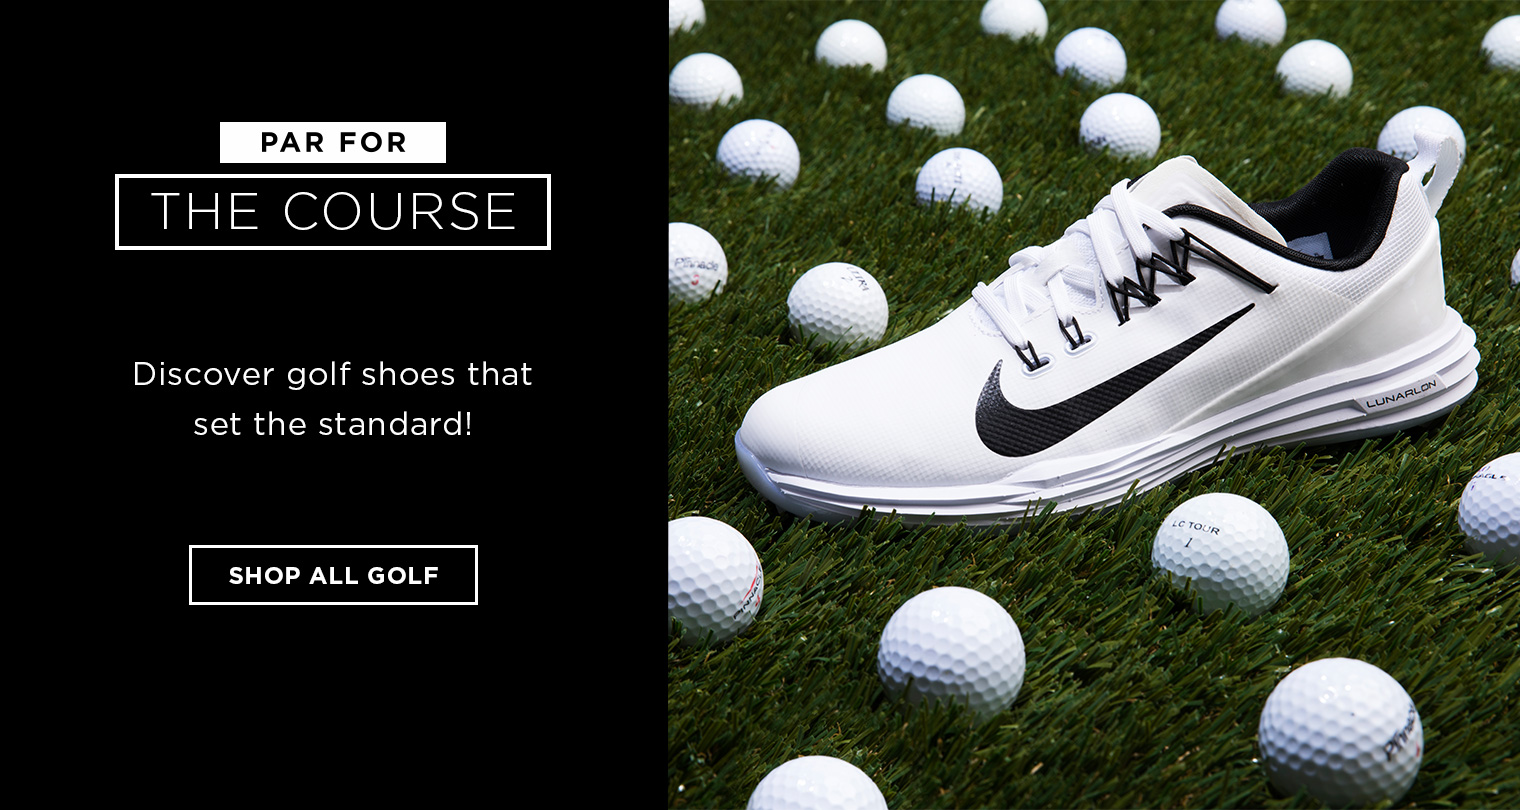 Image of Nike Golf Shoe with golf balls in the background